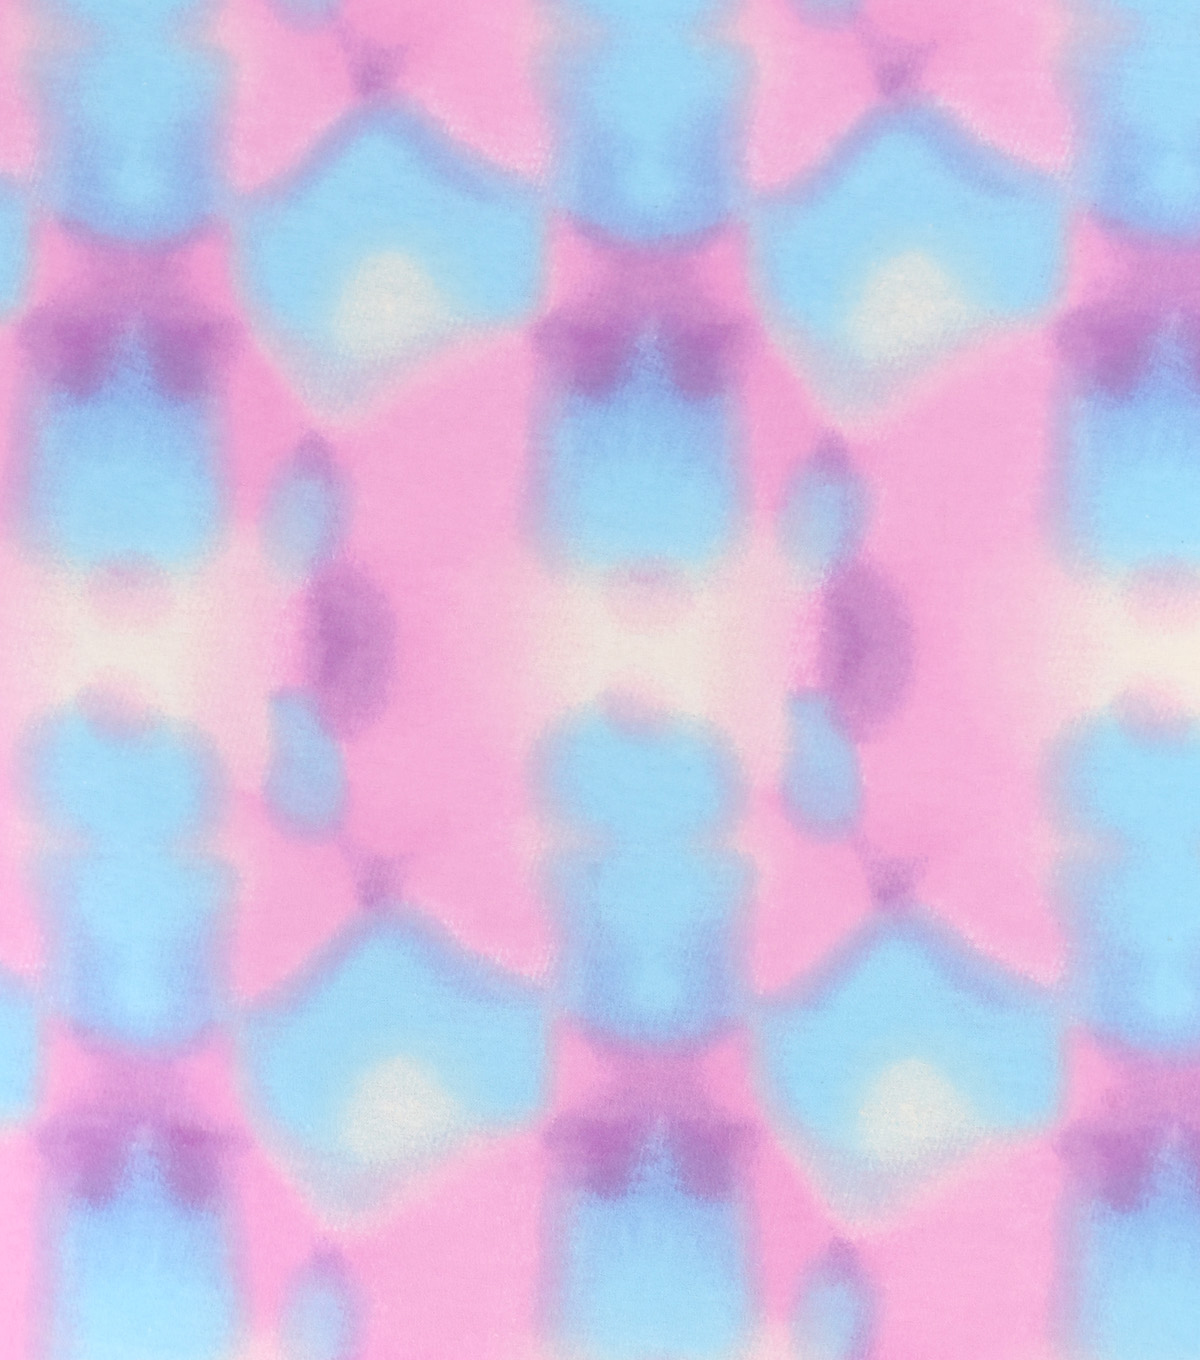 Snuggle Flannel Fabric-Pink & Blue Watercolor Tie Dye